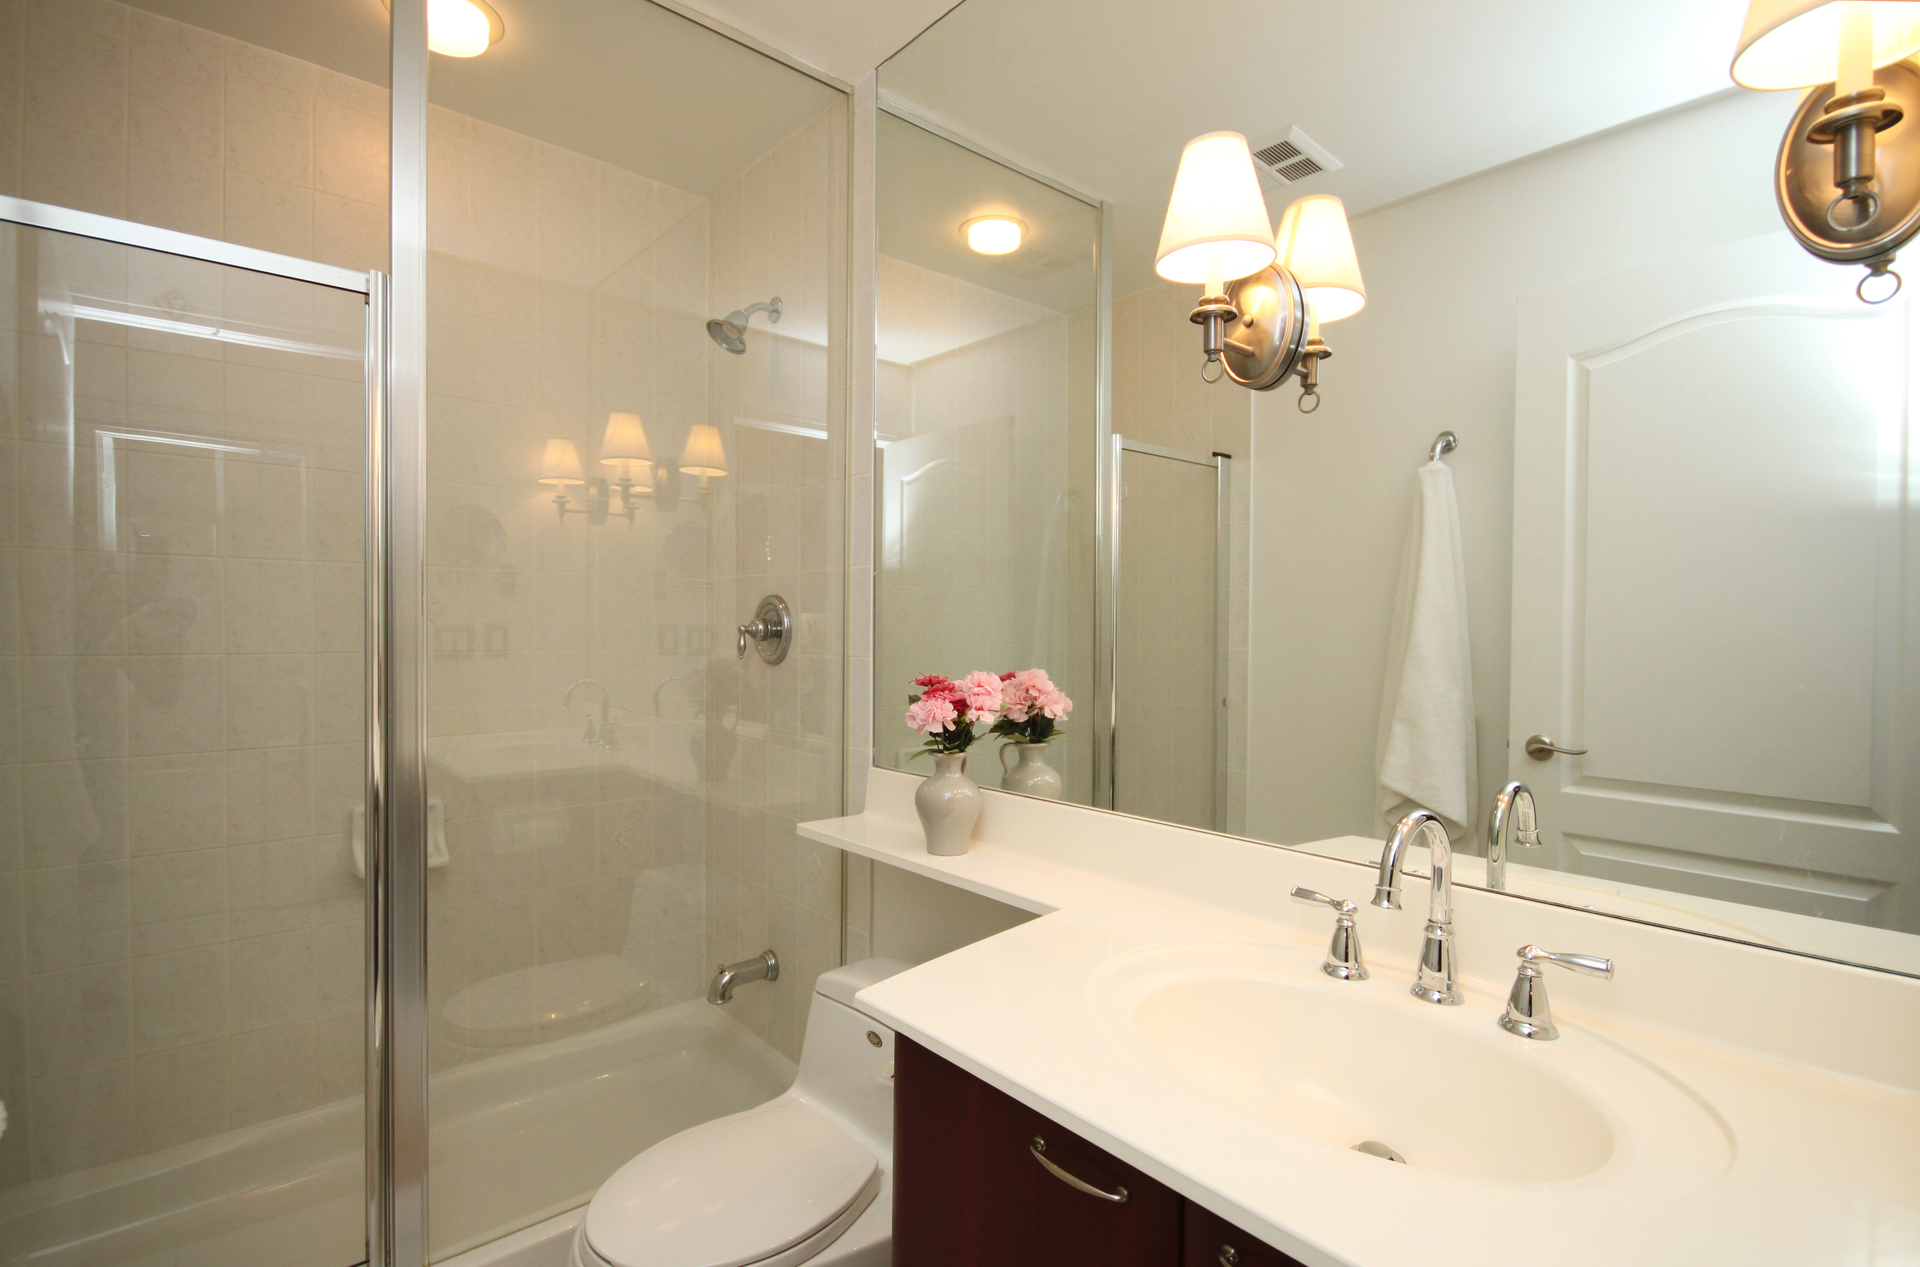 3 Piece Bathroom at 115 - 205 The Donway West, Banbury-Don Mills, Toronto